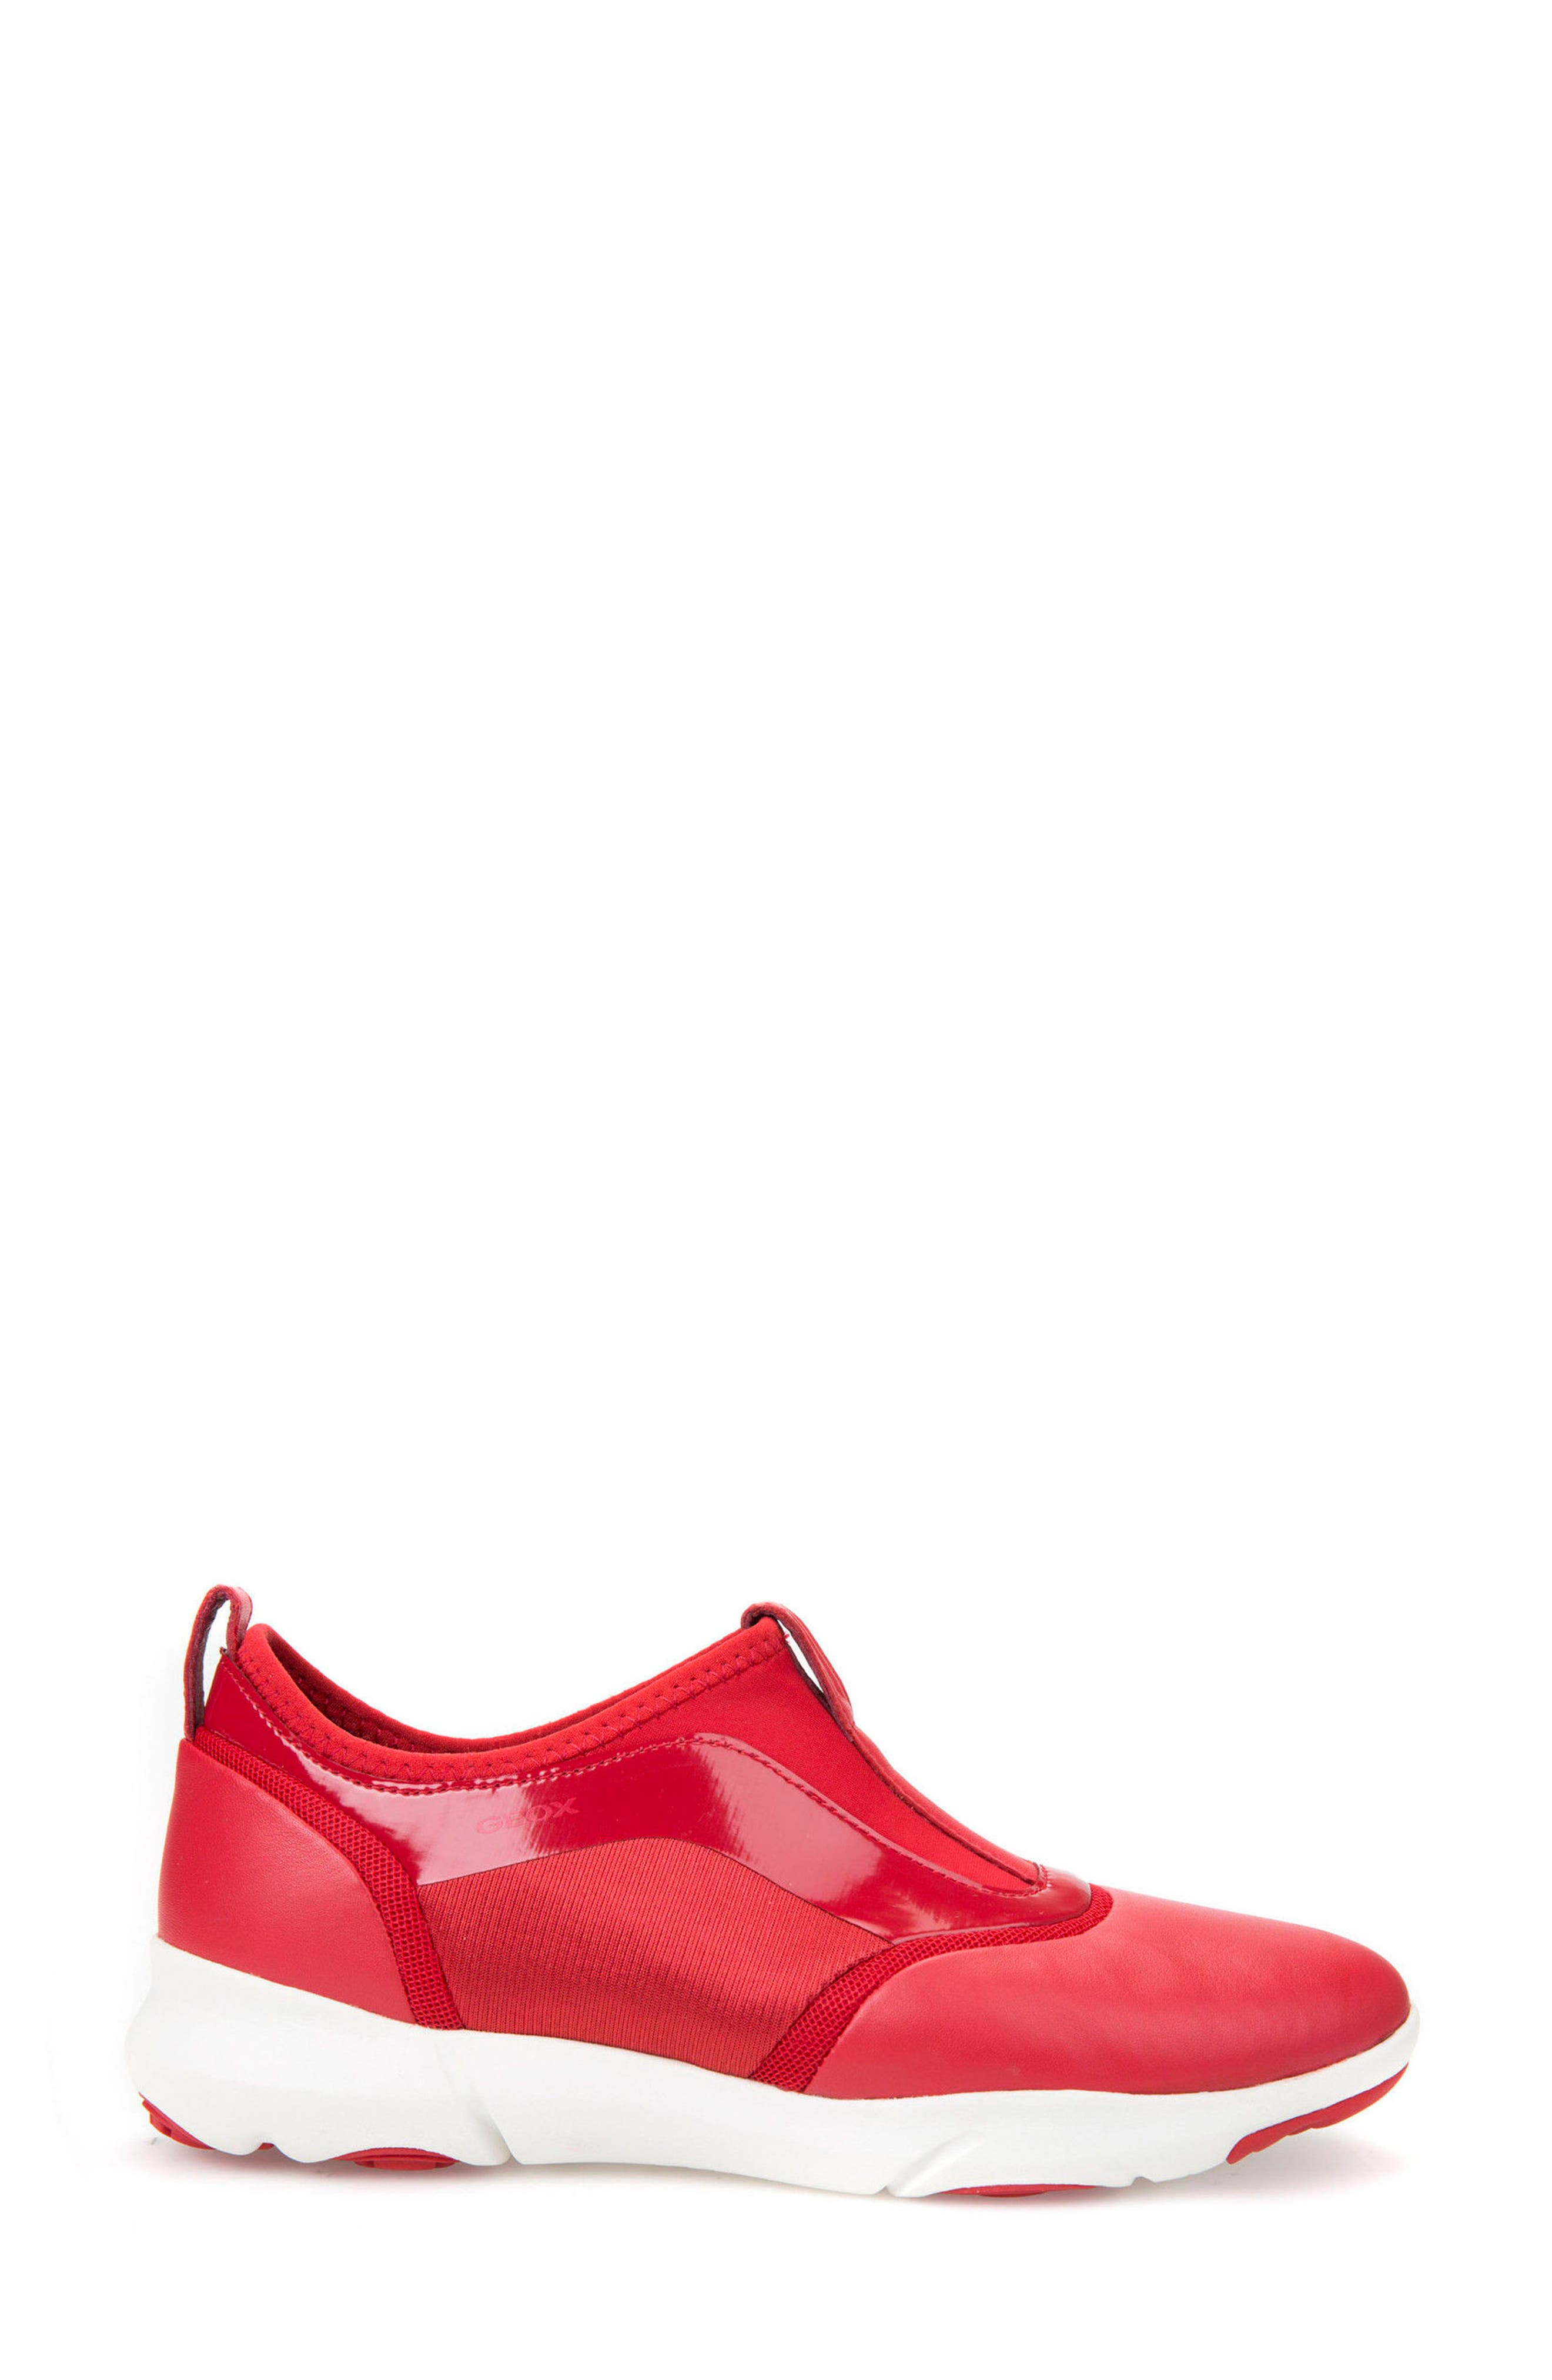 Nebula S Slip-On Sneaker,                             Alternate thumbnail 3, color,                             Red Leather